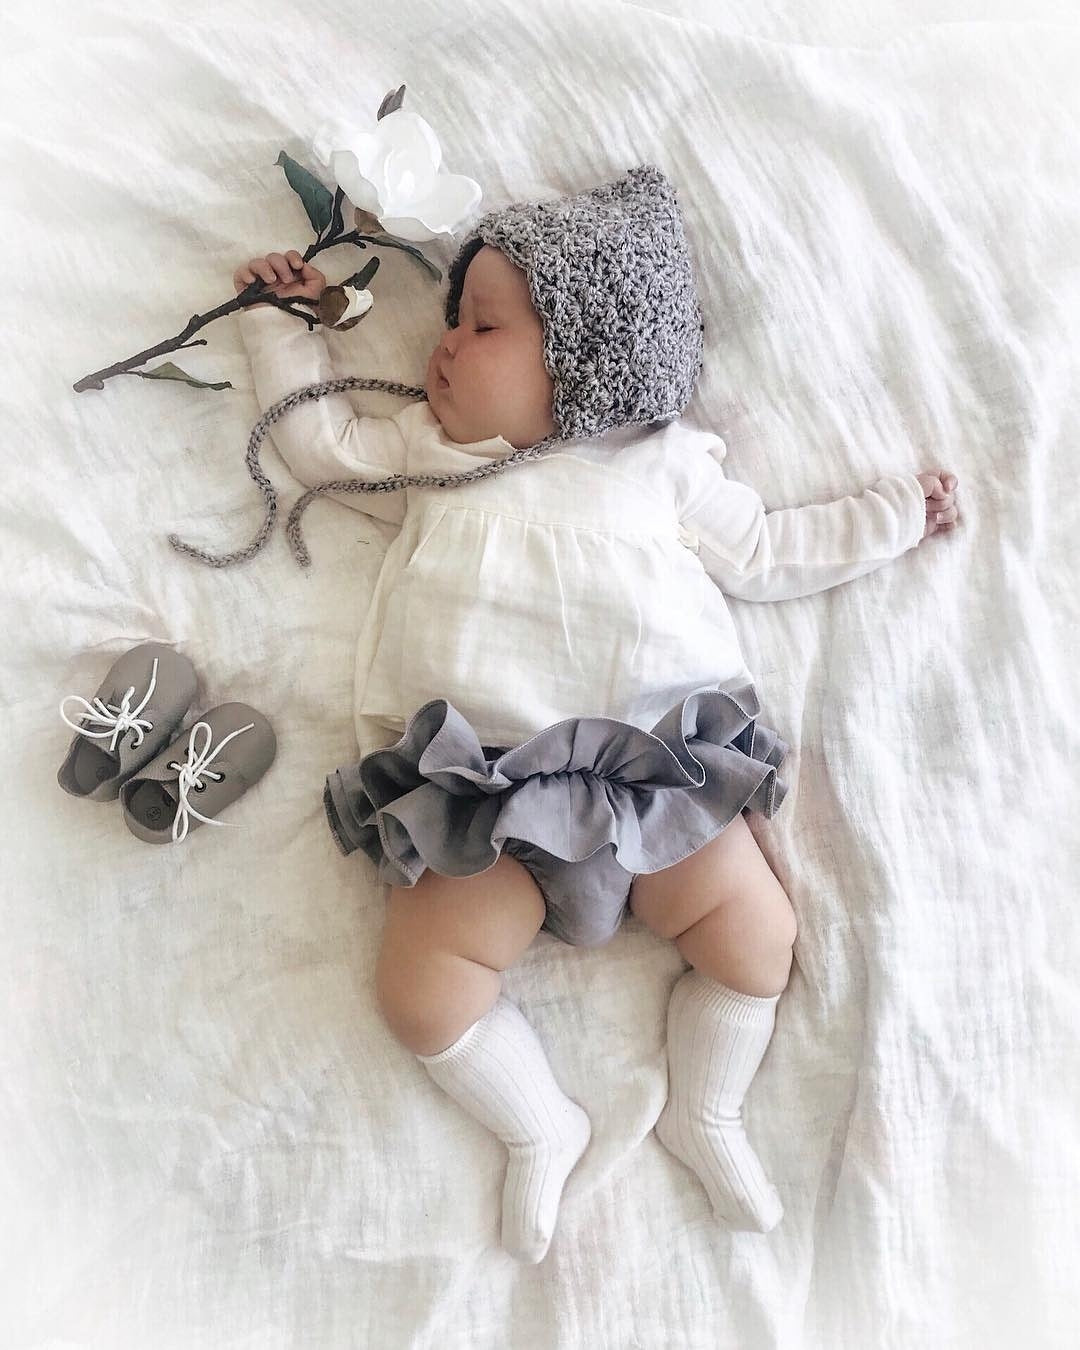 harper | pixie bonnet + colours - Loops For Littles, handmade knits for infants and toddlers